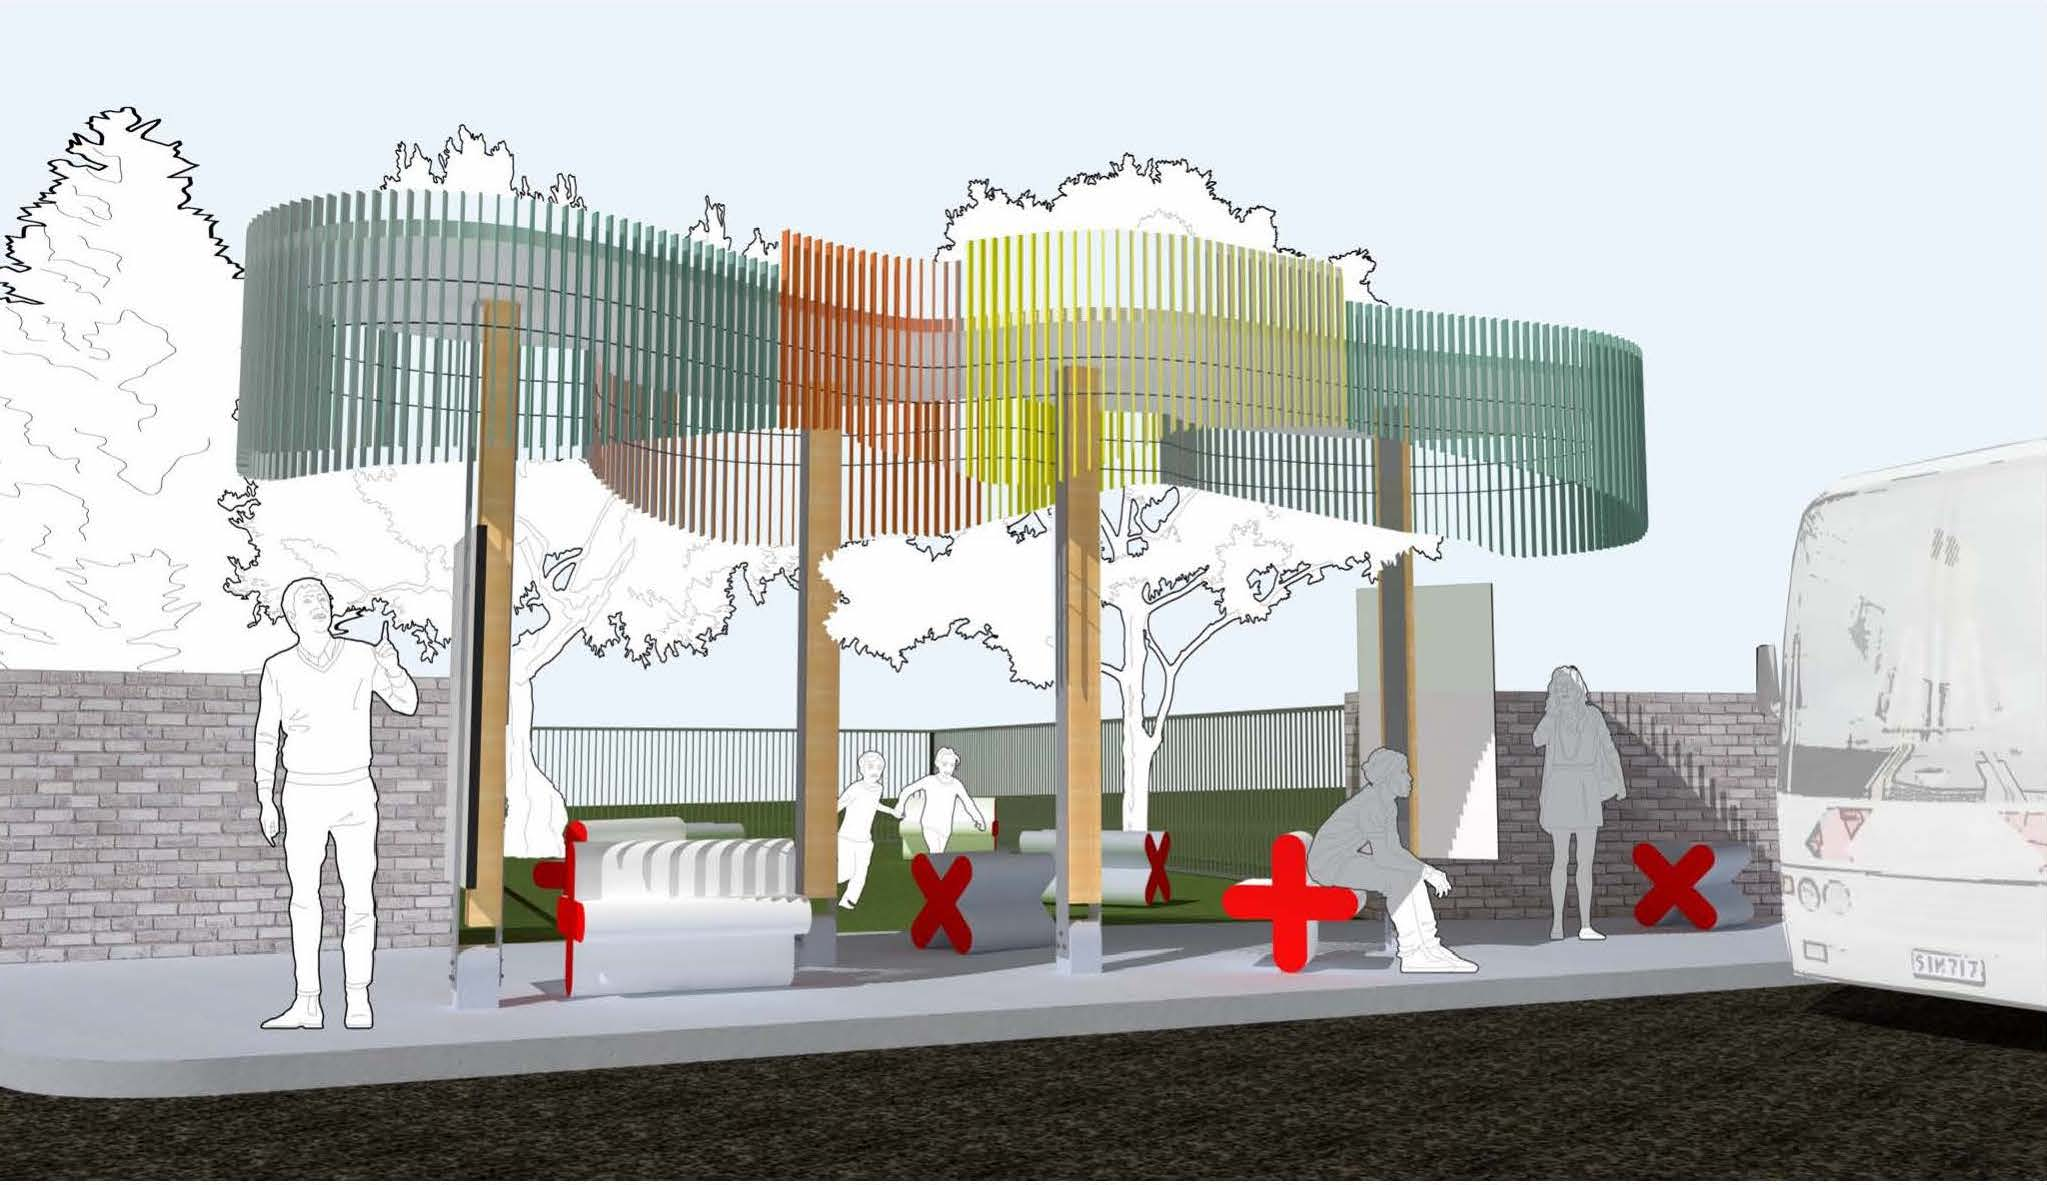 Rendering of the first transit stop design, showcasing stops that feature X and + shaped seats and tree-like sheltering.